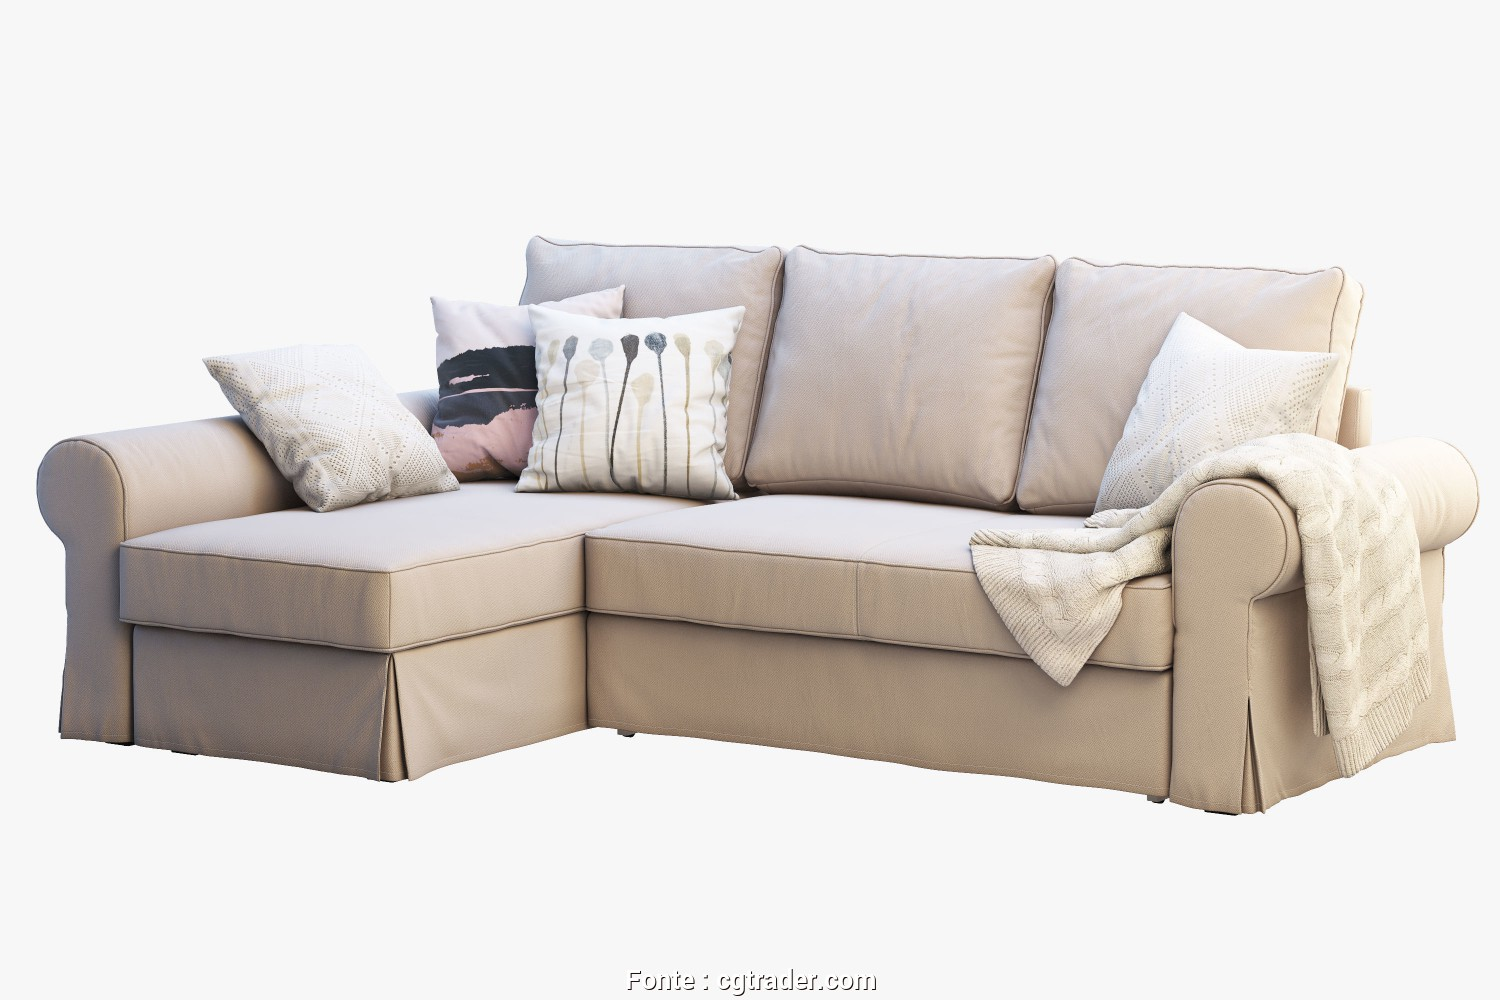 Backabro Ikea Couch, Classy ... Ikea Backabro 2 Sofas 3D Model, Obj, 3Ds, 4